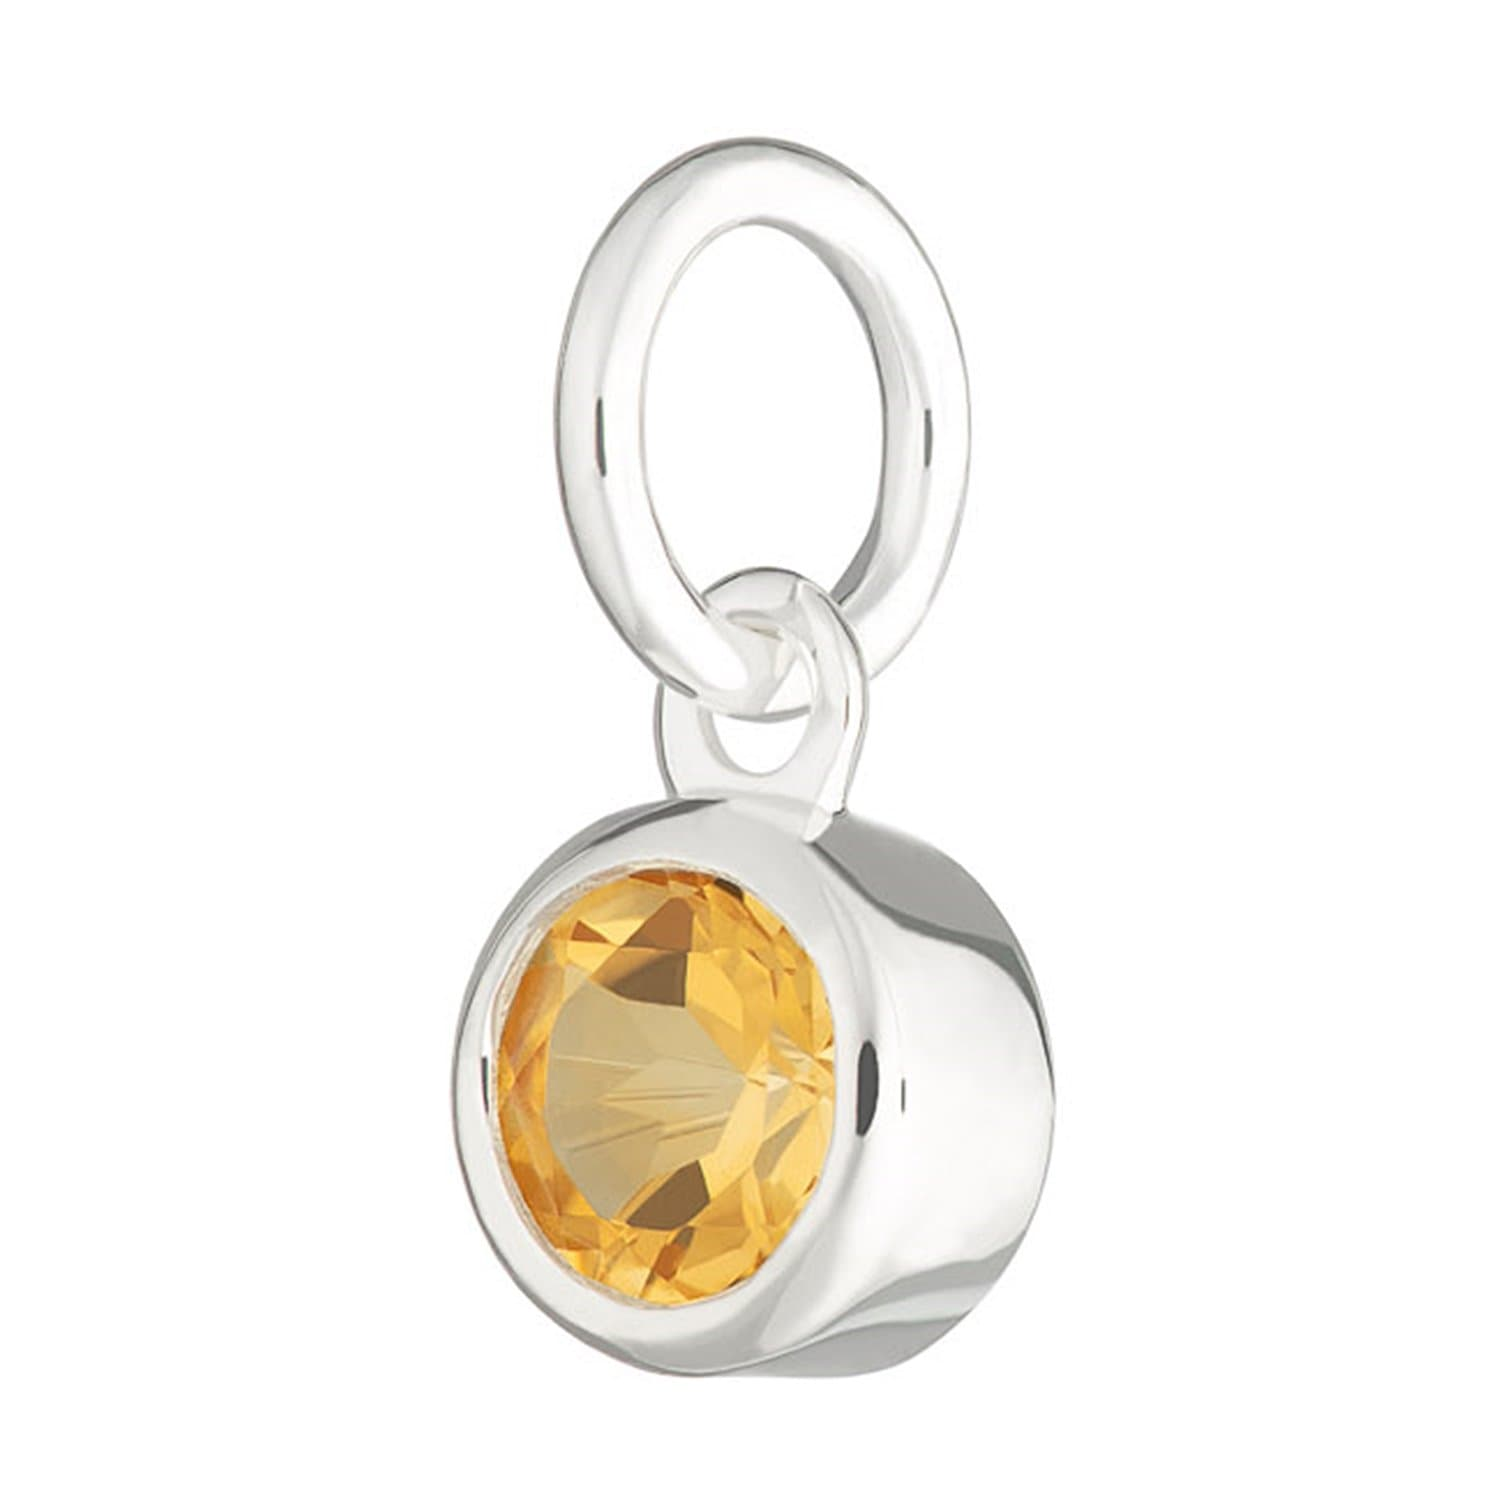 Citrine Charm - November Birthstone - Lily Charmed